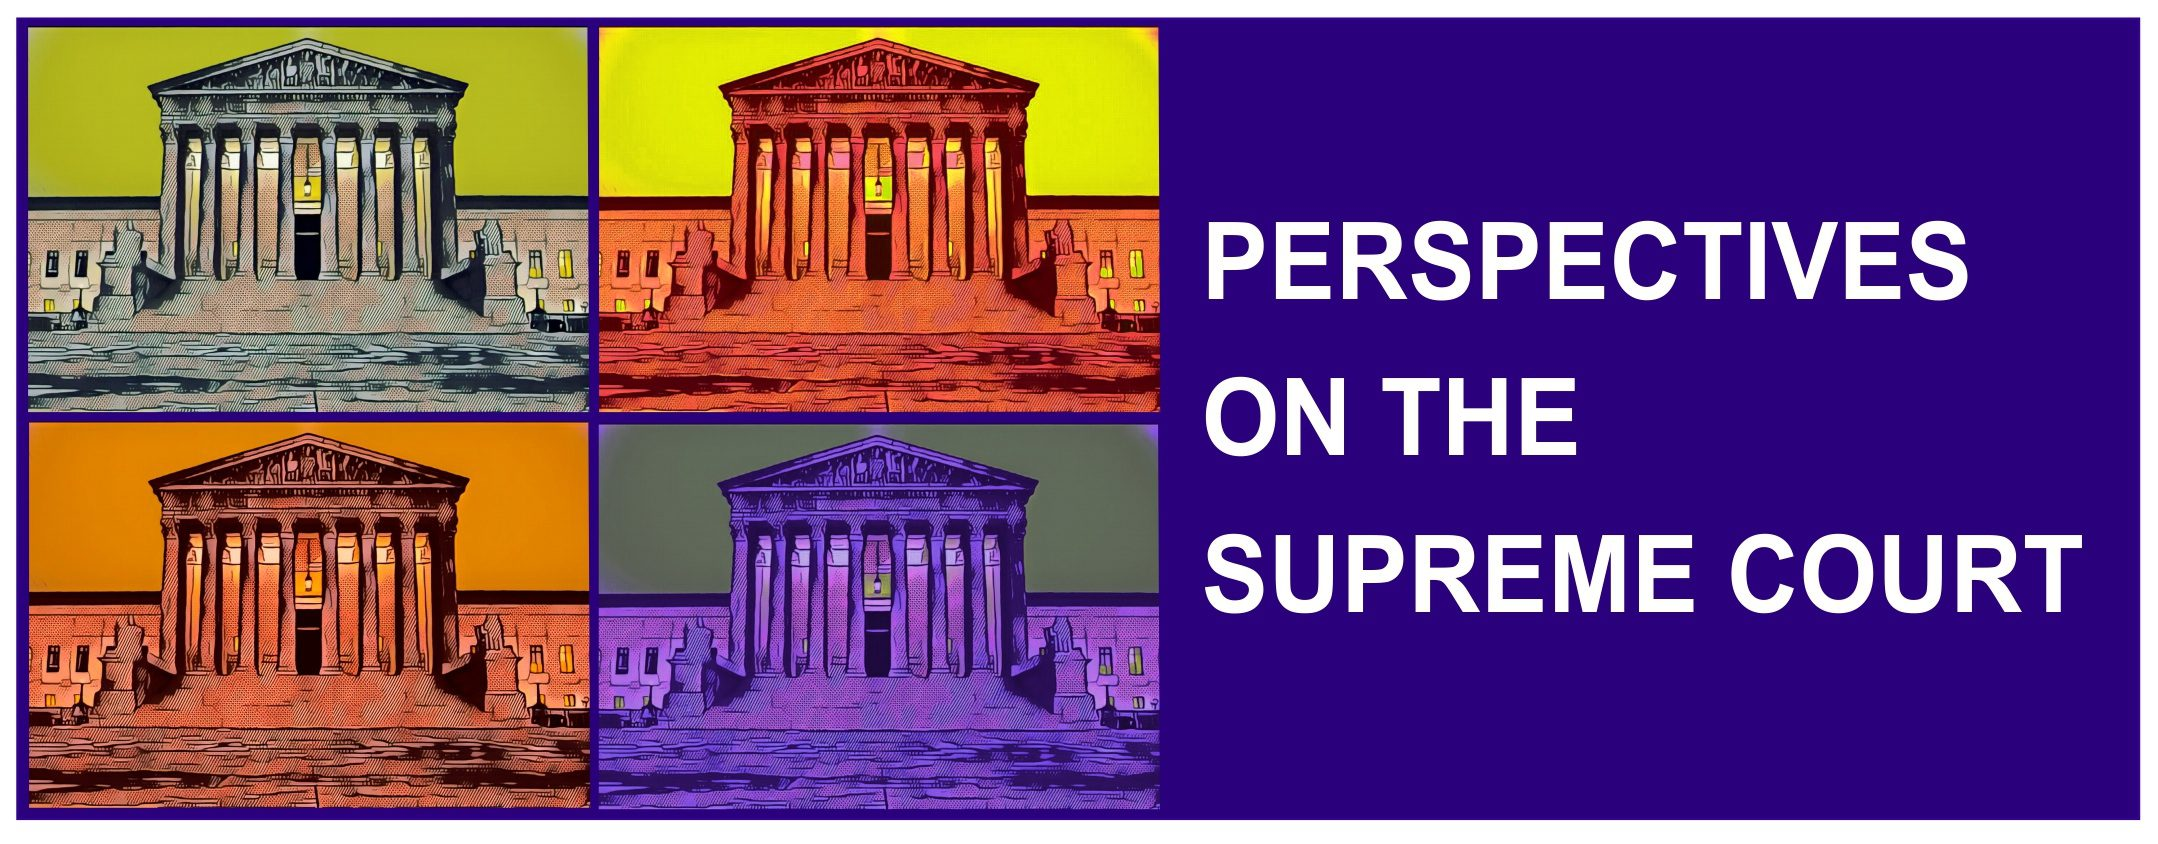 Perspectives on the Supreme Court Banner